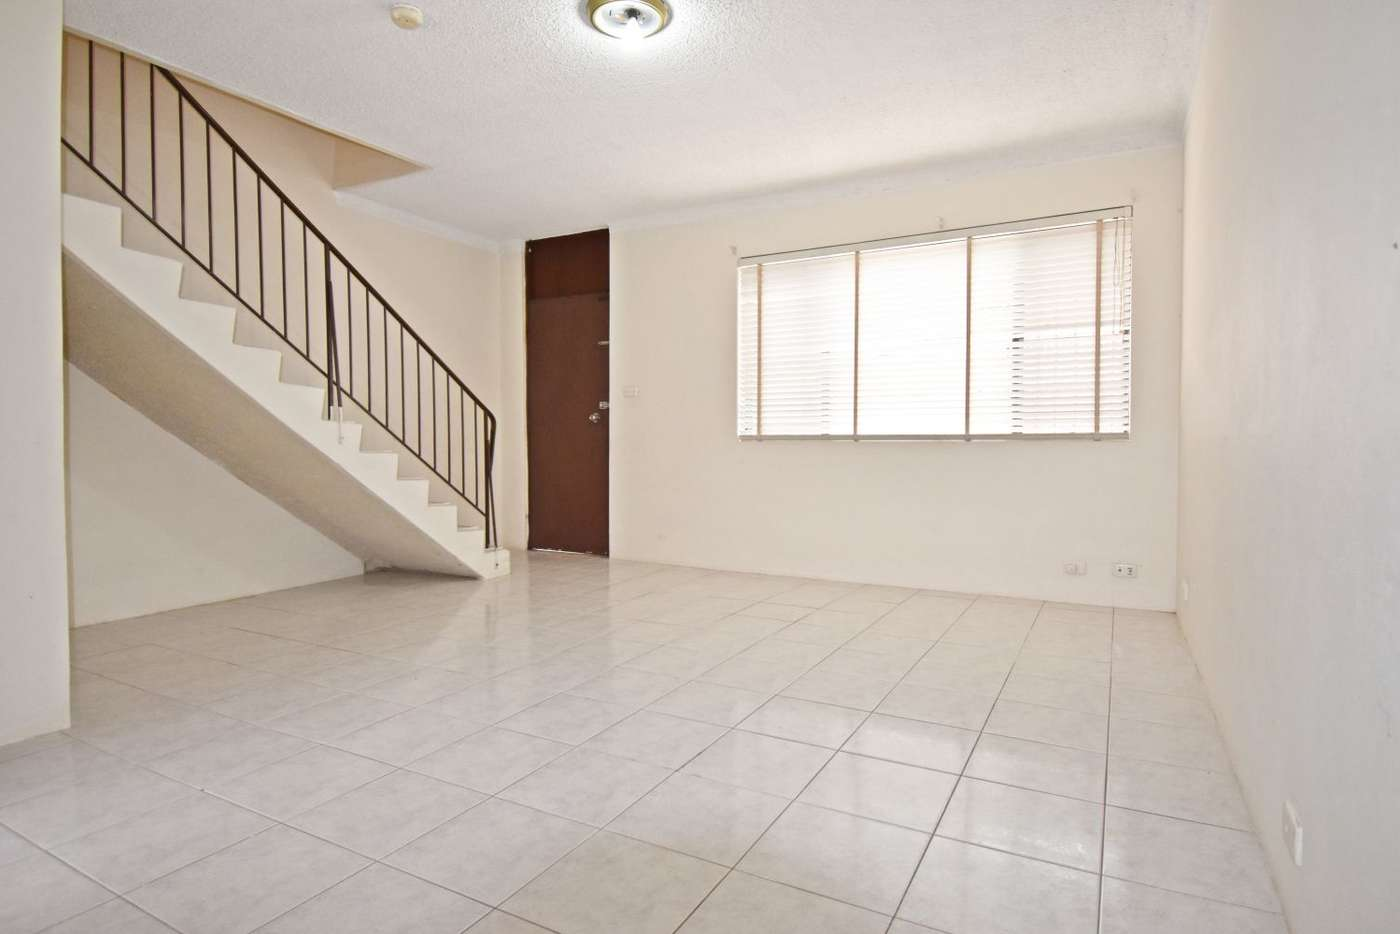 Main view of Homely townhouse listing, 12/30 Pevensey Street, Canley Vale NSW 2166